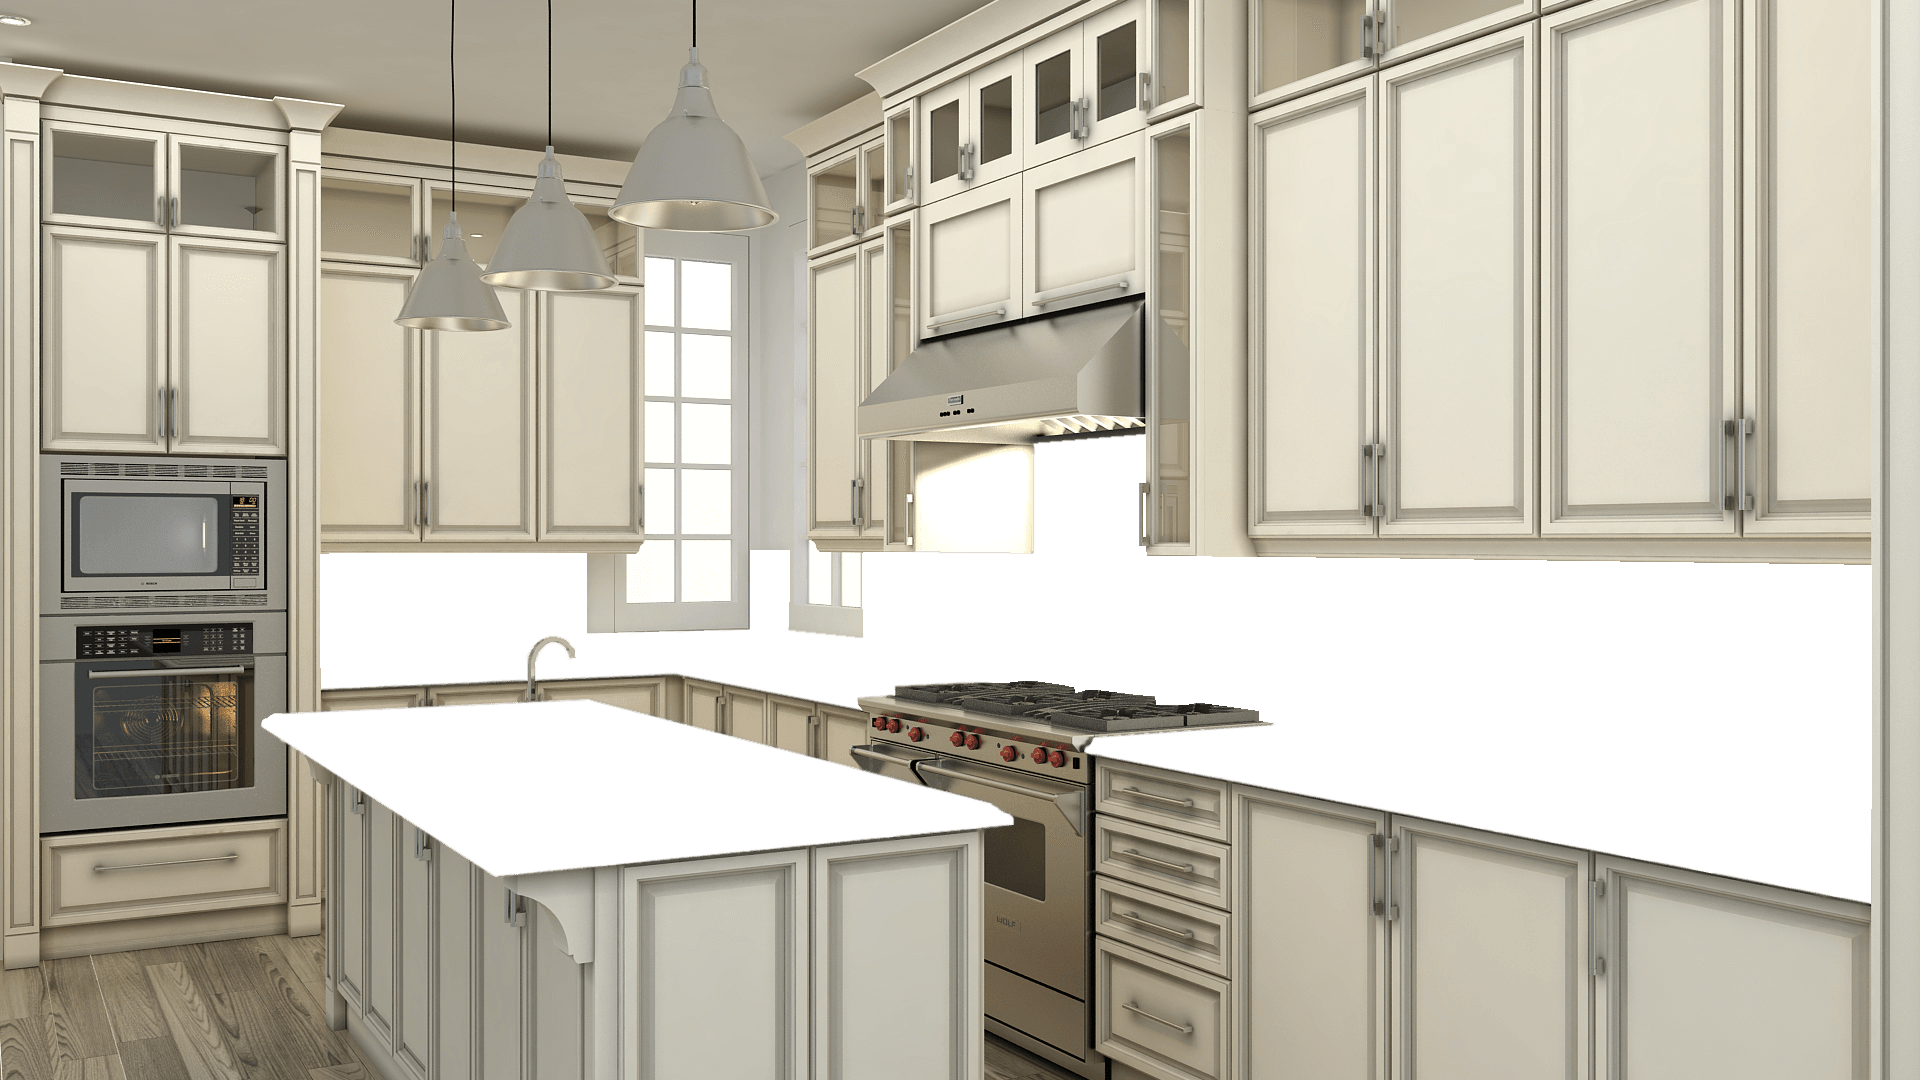 Kitchen Cabinet Visualizer Kitchen Appliance Visualizer Redplant Realtime Studio Showplace Crafts Every Cabinet To Order Each One Personalized With Selections You Make From A Vast Array Of Styling Wood Species